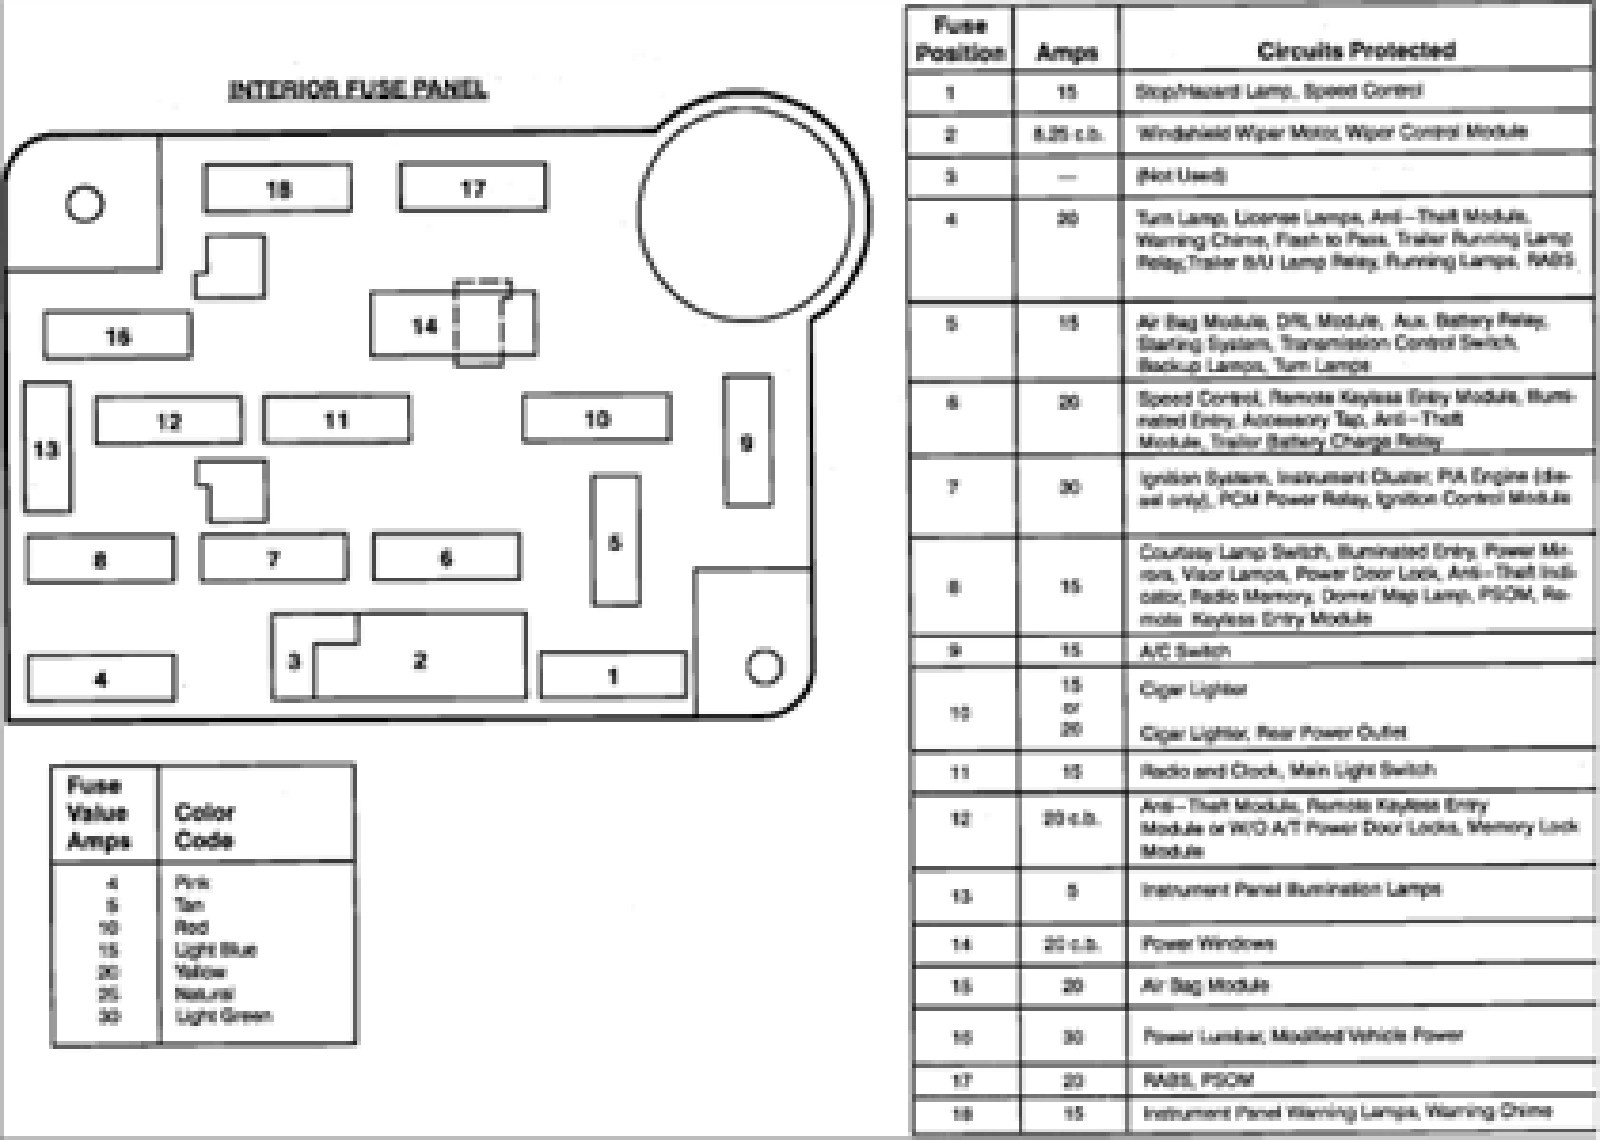 hight resolution of 1997 ford econoline e150 fuse box diagram wiring diagrams system mix ford e 150 questions fuse